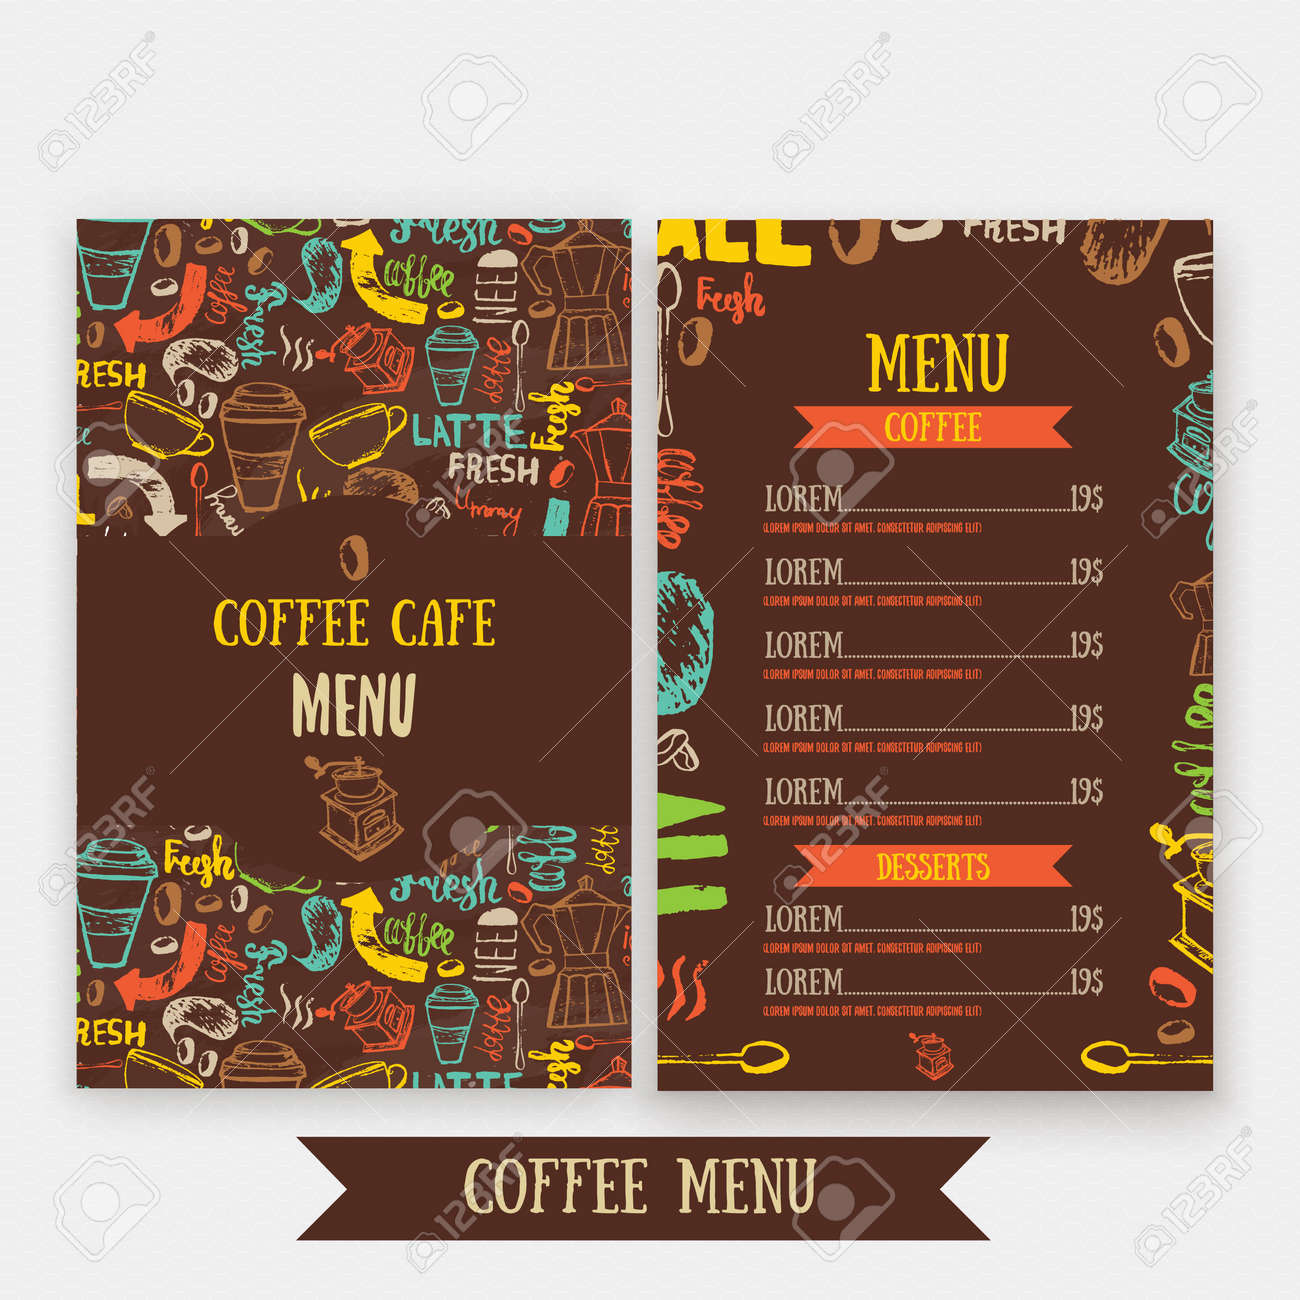 Cafe Menu Template Design With Lettering For Coffee Shop Hand Drawn